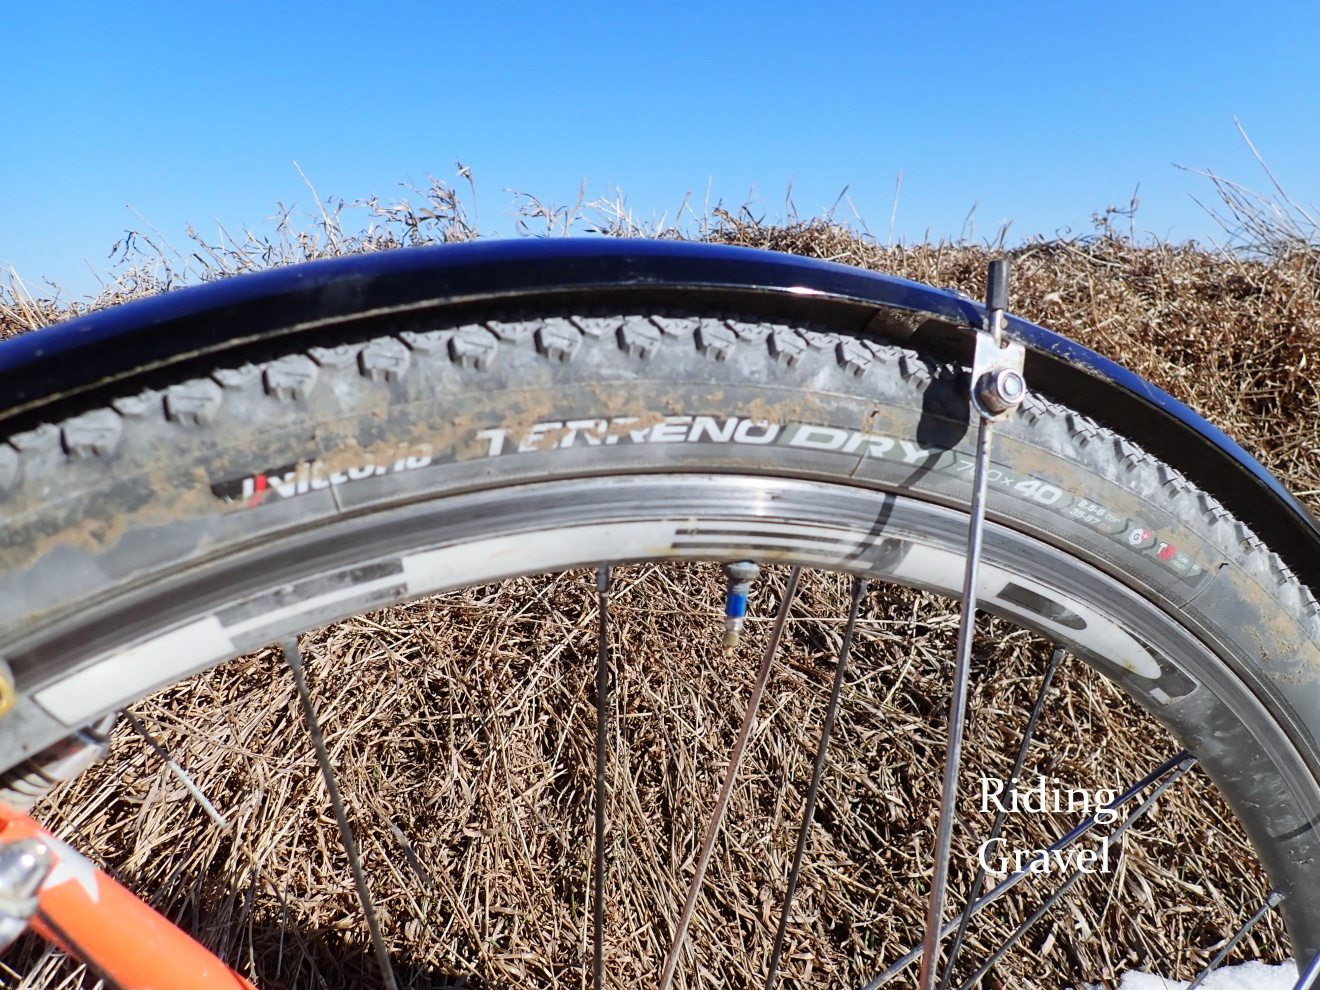 Vittoria Terreno Dry And Mix 40mm Tires: At The Finish Part 2